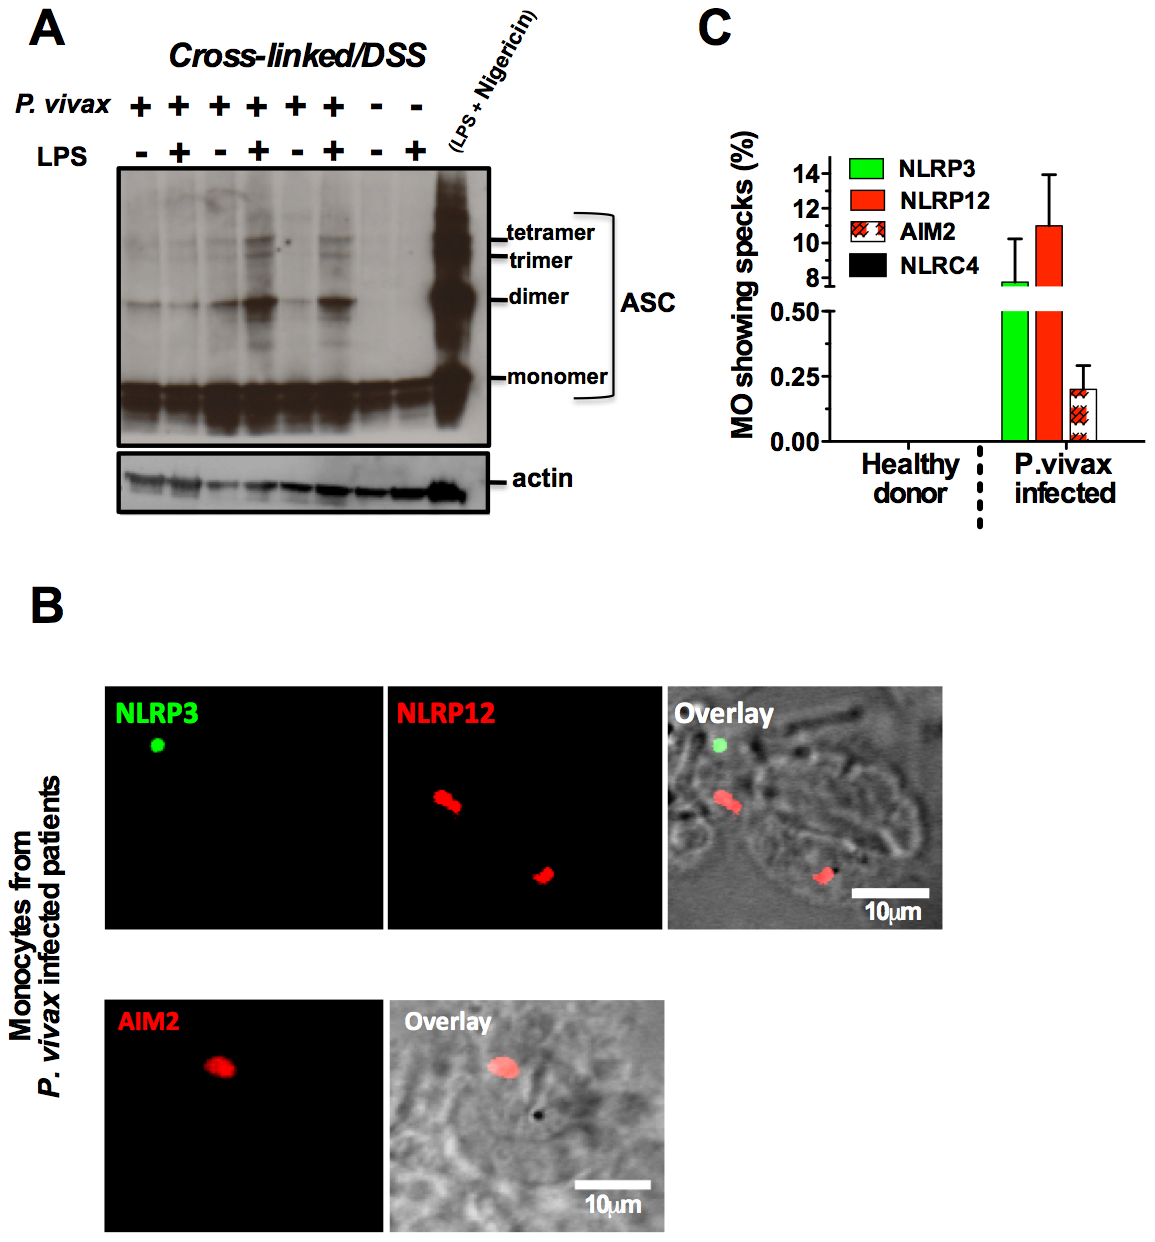 NLRP3/NLRP12 containing inflammasomes and caspase-1 activation in PBMCs from <i>P. vivax</i> malaria patients.